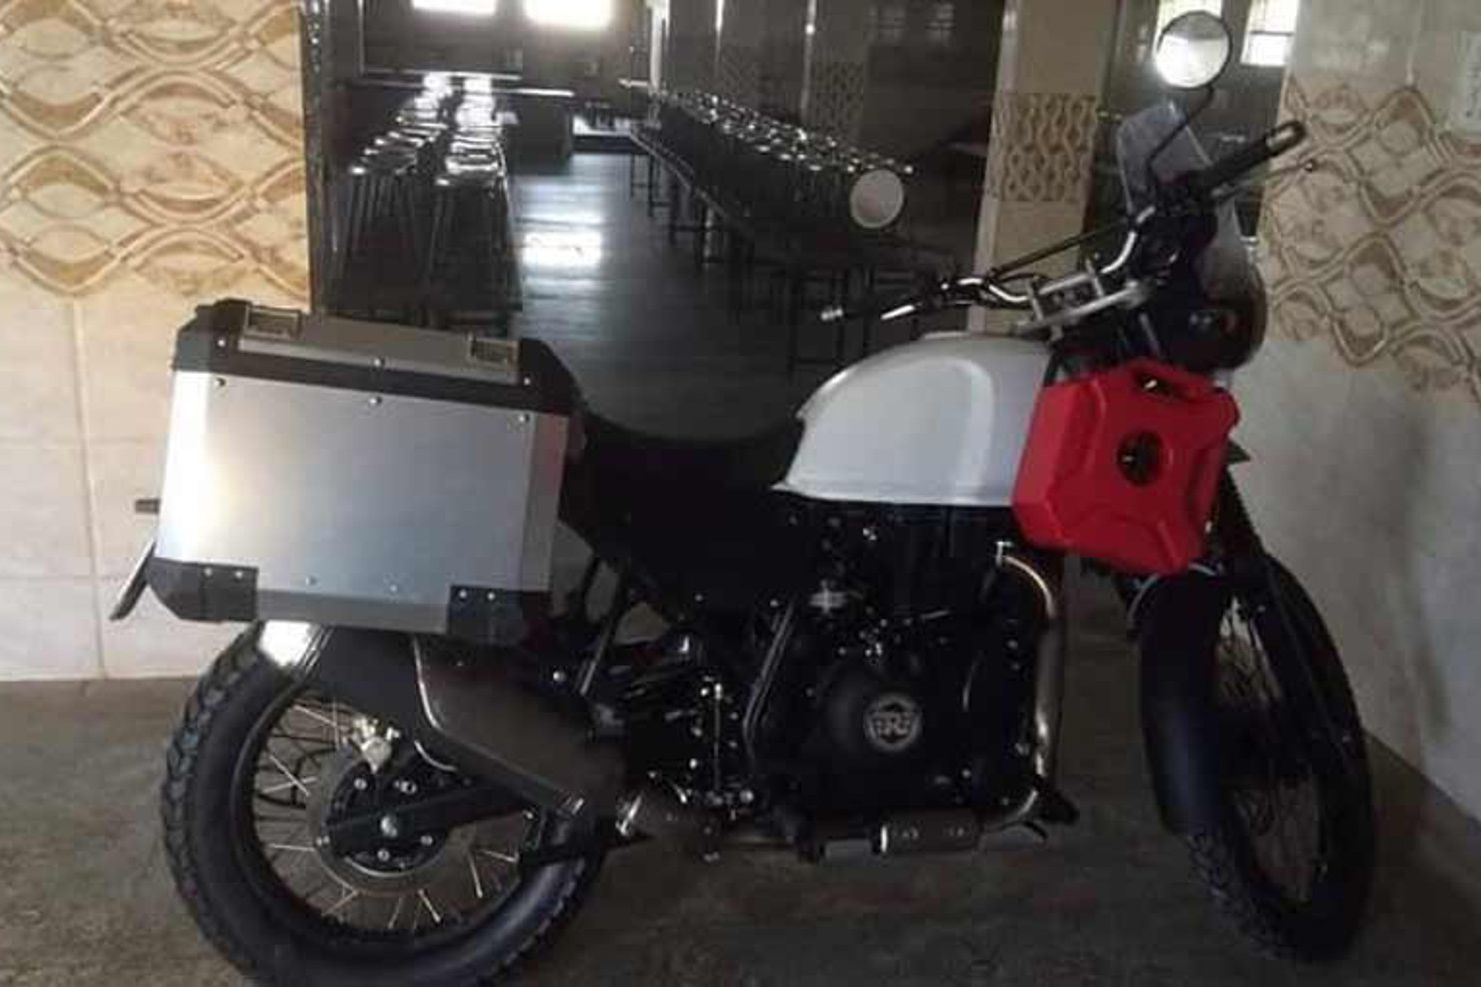 This is what the Royal Enfield Himalayan sounds like